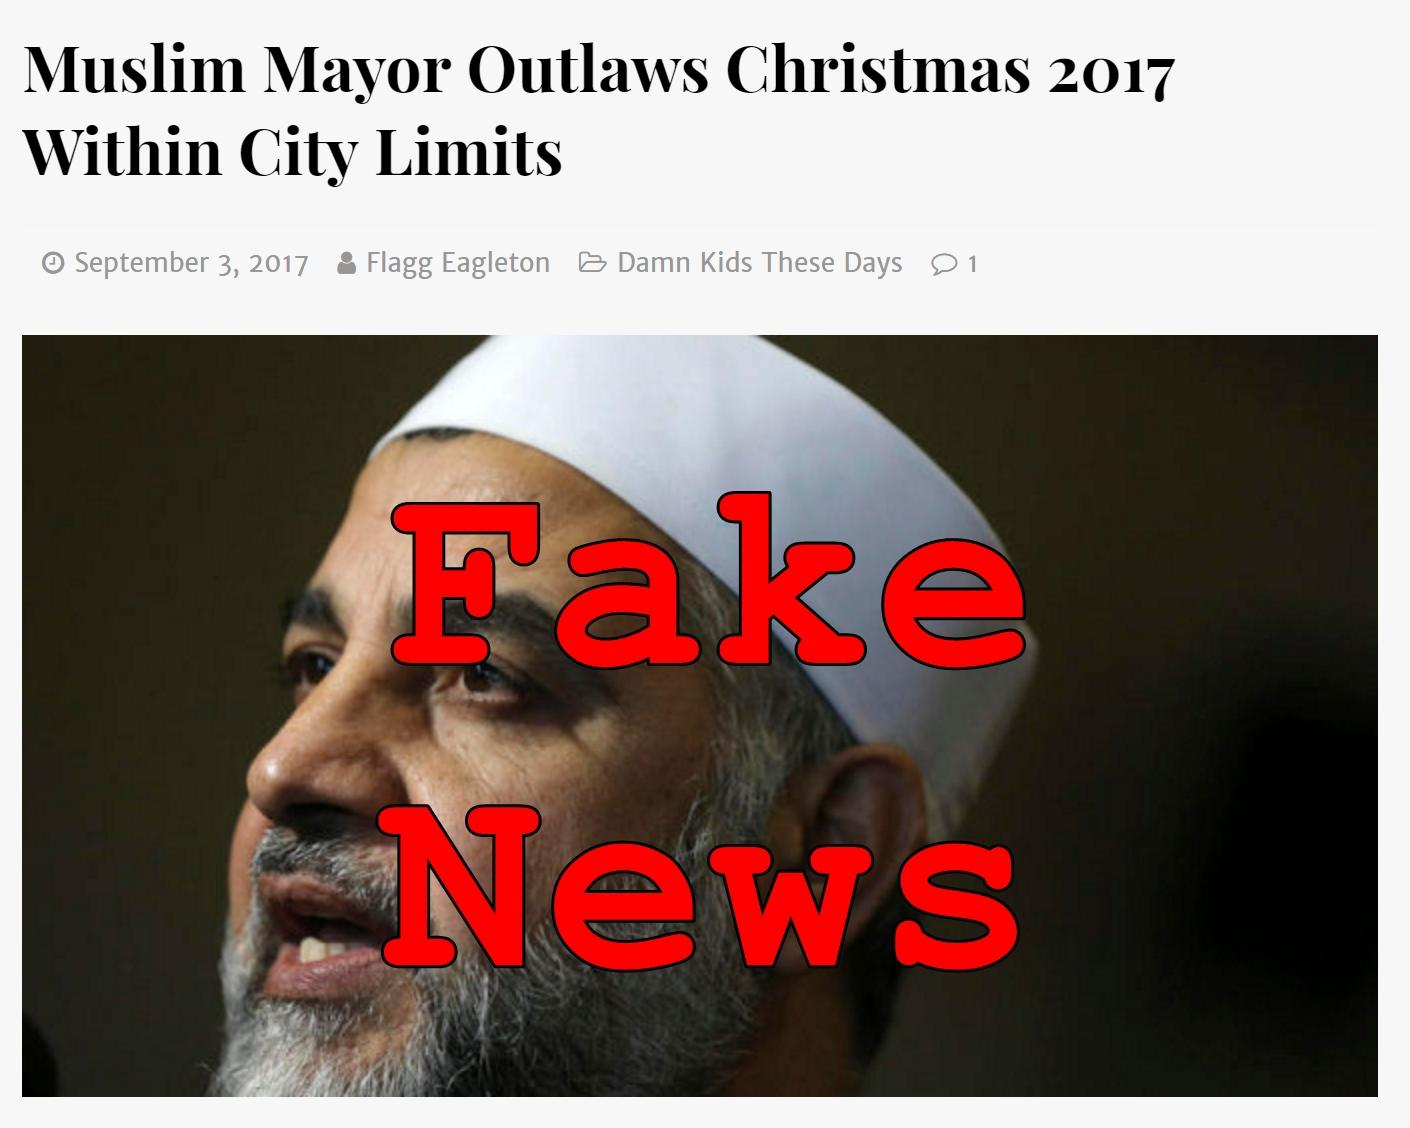 Fake News: Muslim Mayor Did NOT Outlaw Christmas 2017 Within City Limits